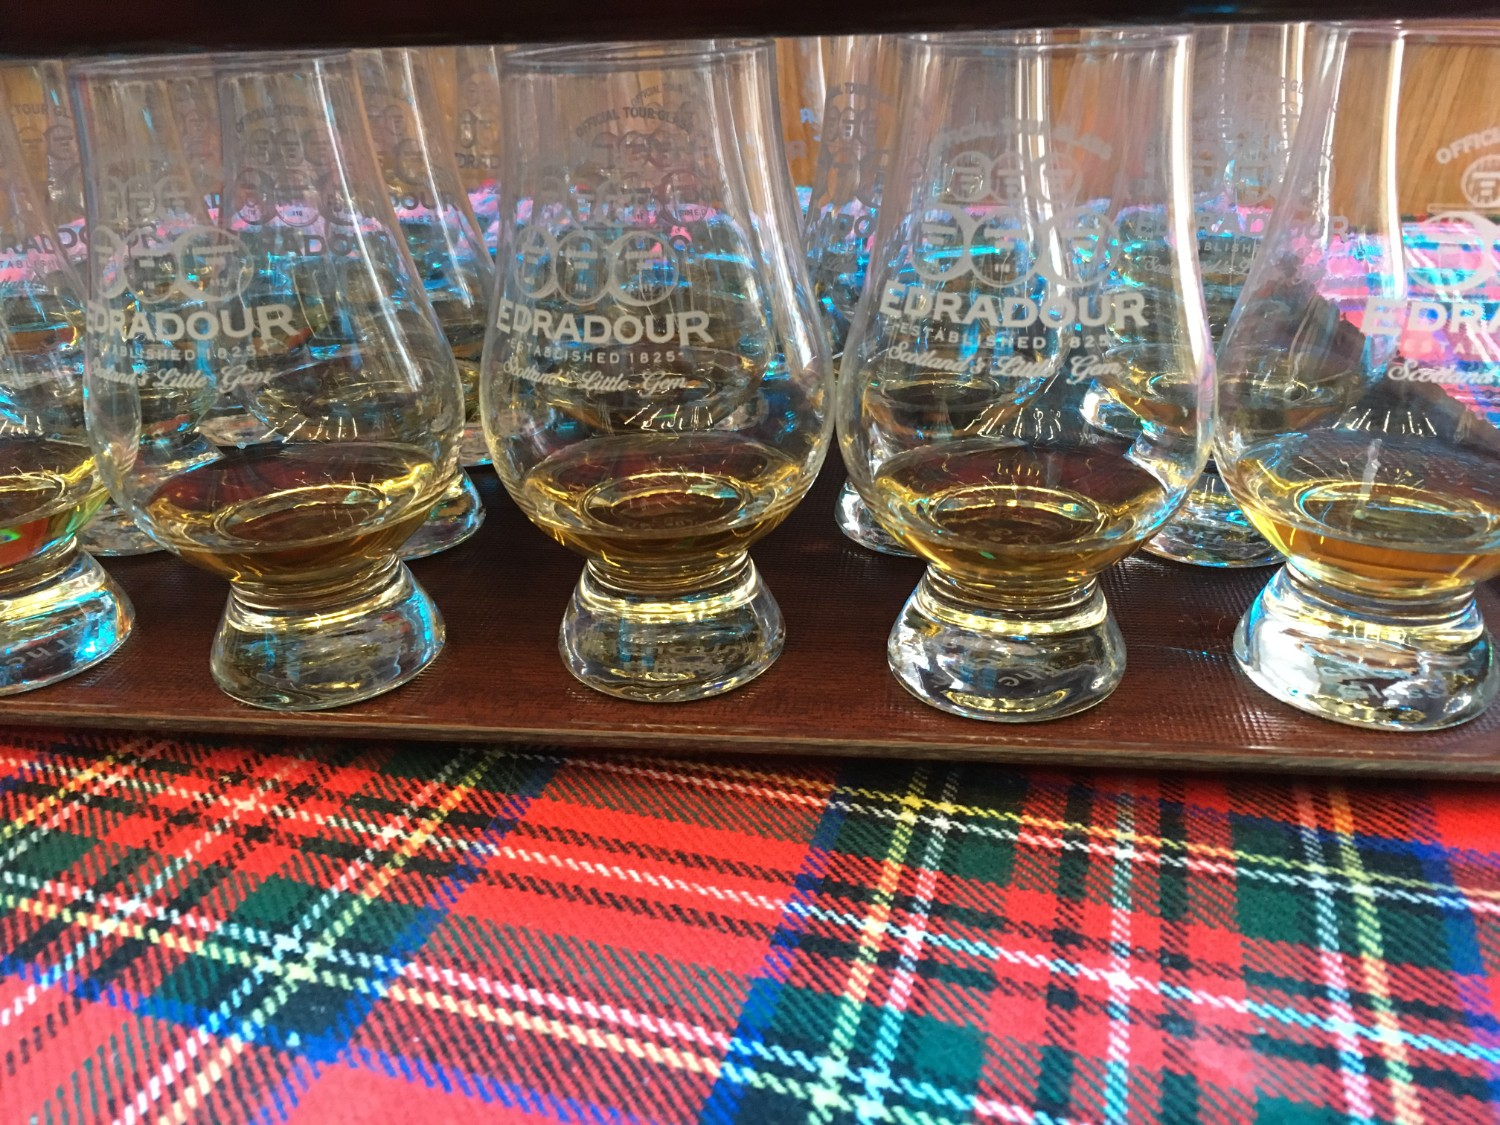 A tray full of drams of whisky resting on tartan at Edradour Distillery in Pitlochry, Scotland